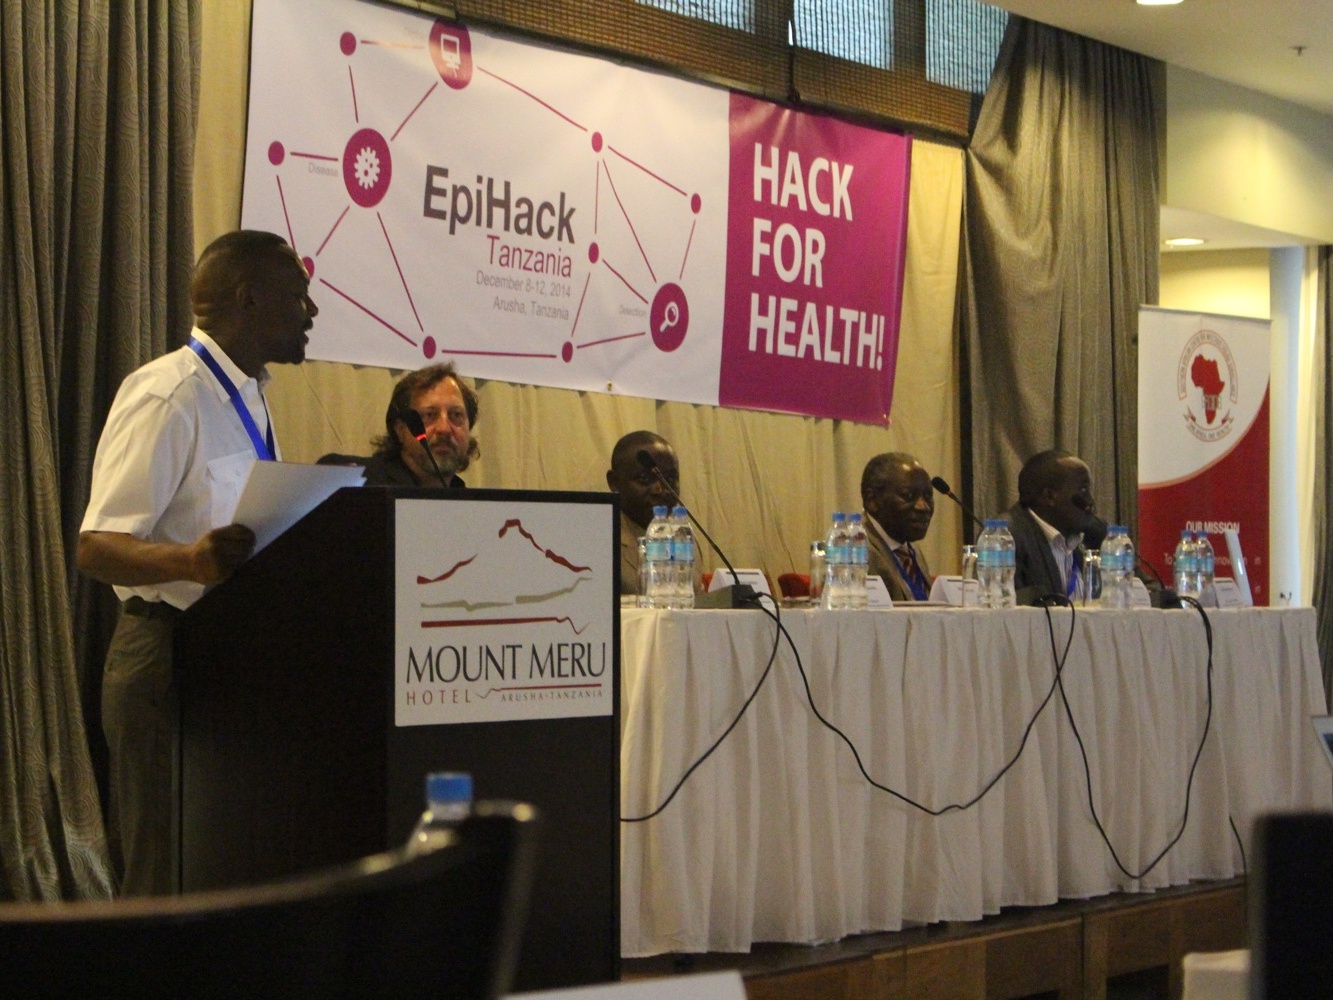 EpiHack event in EpiHack Tanzania on December 2014